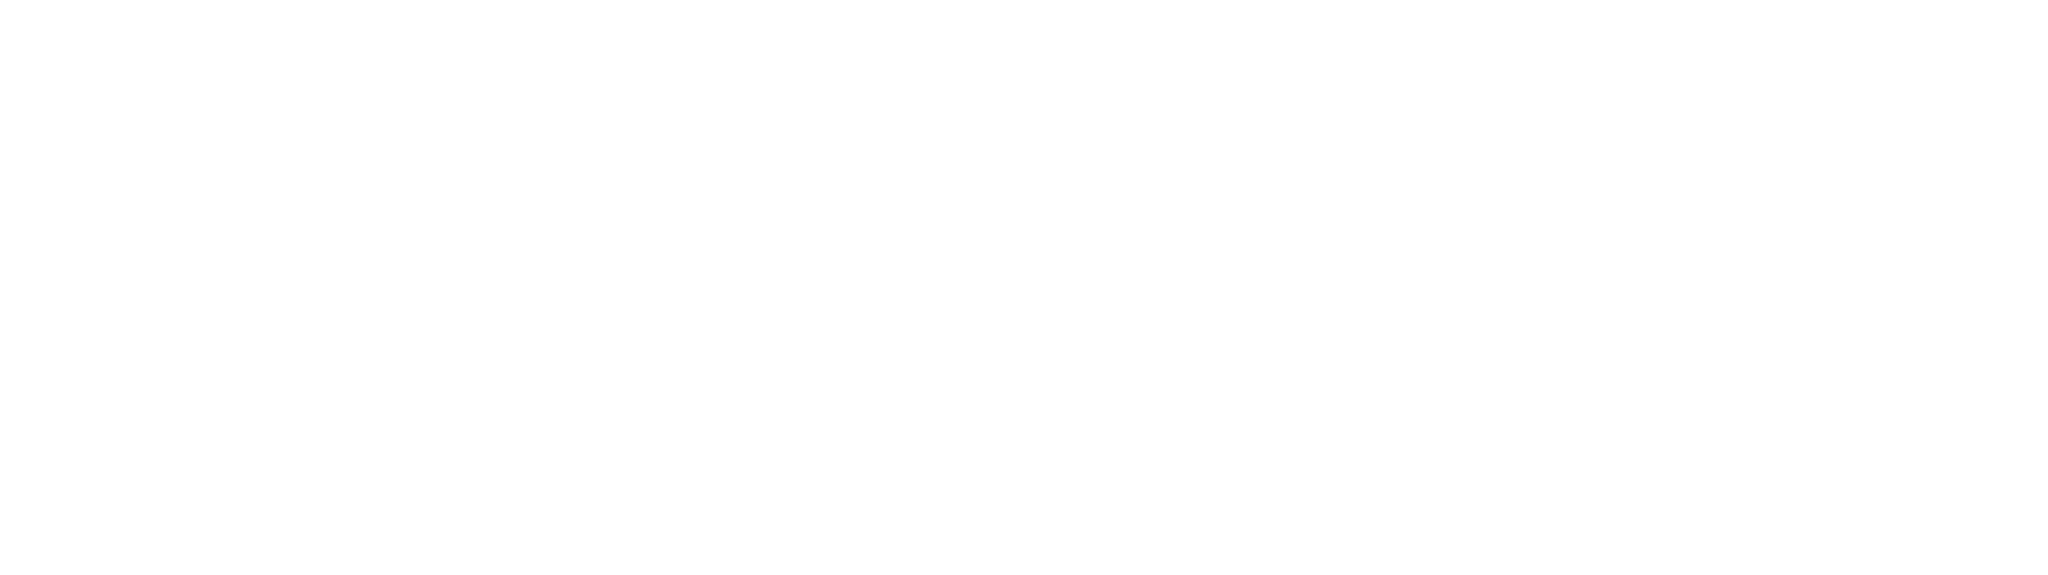 Zakoor Photography